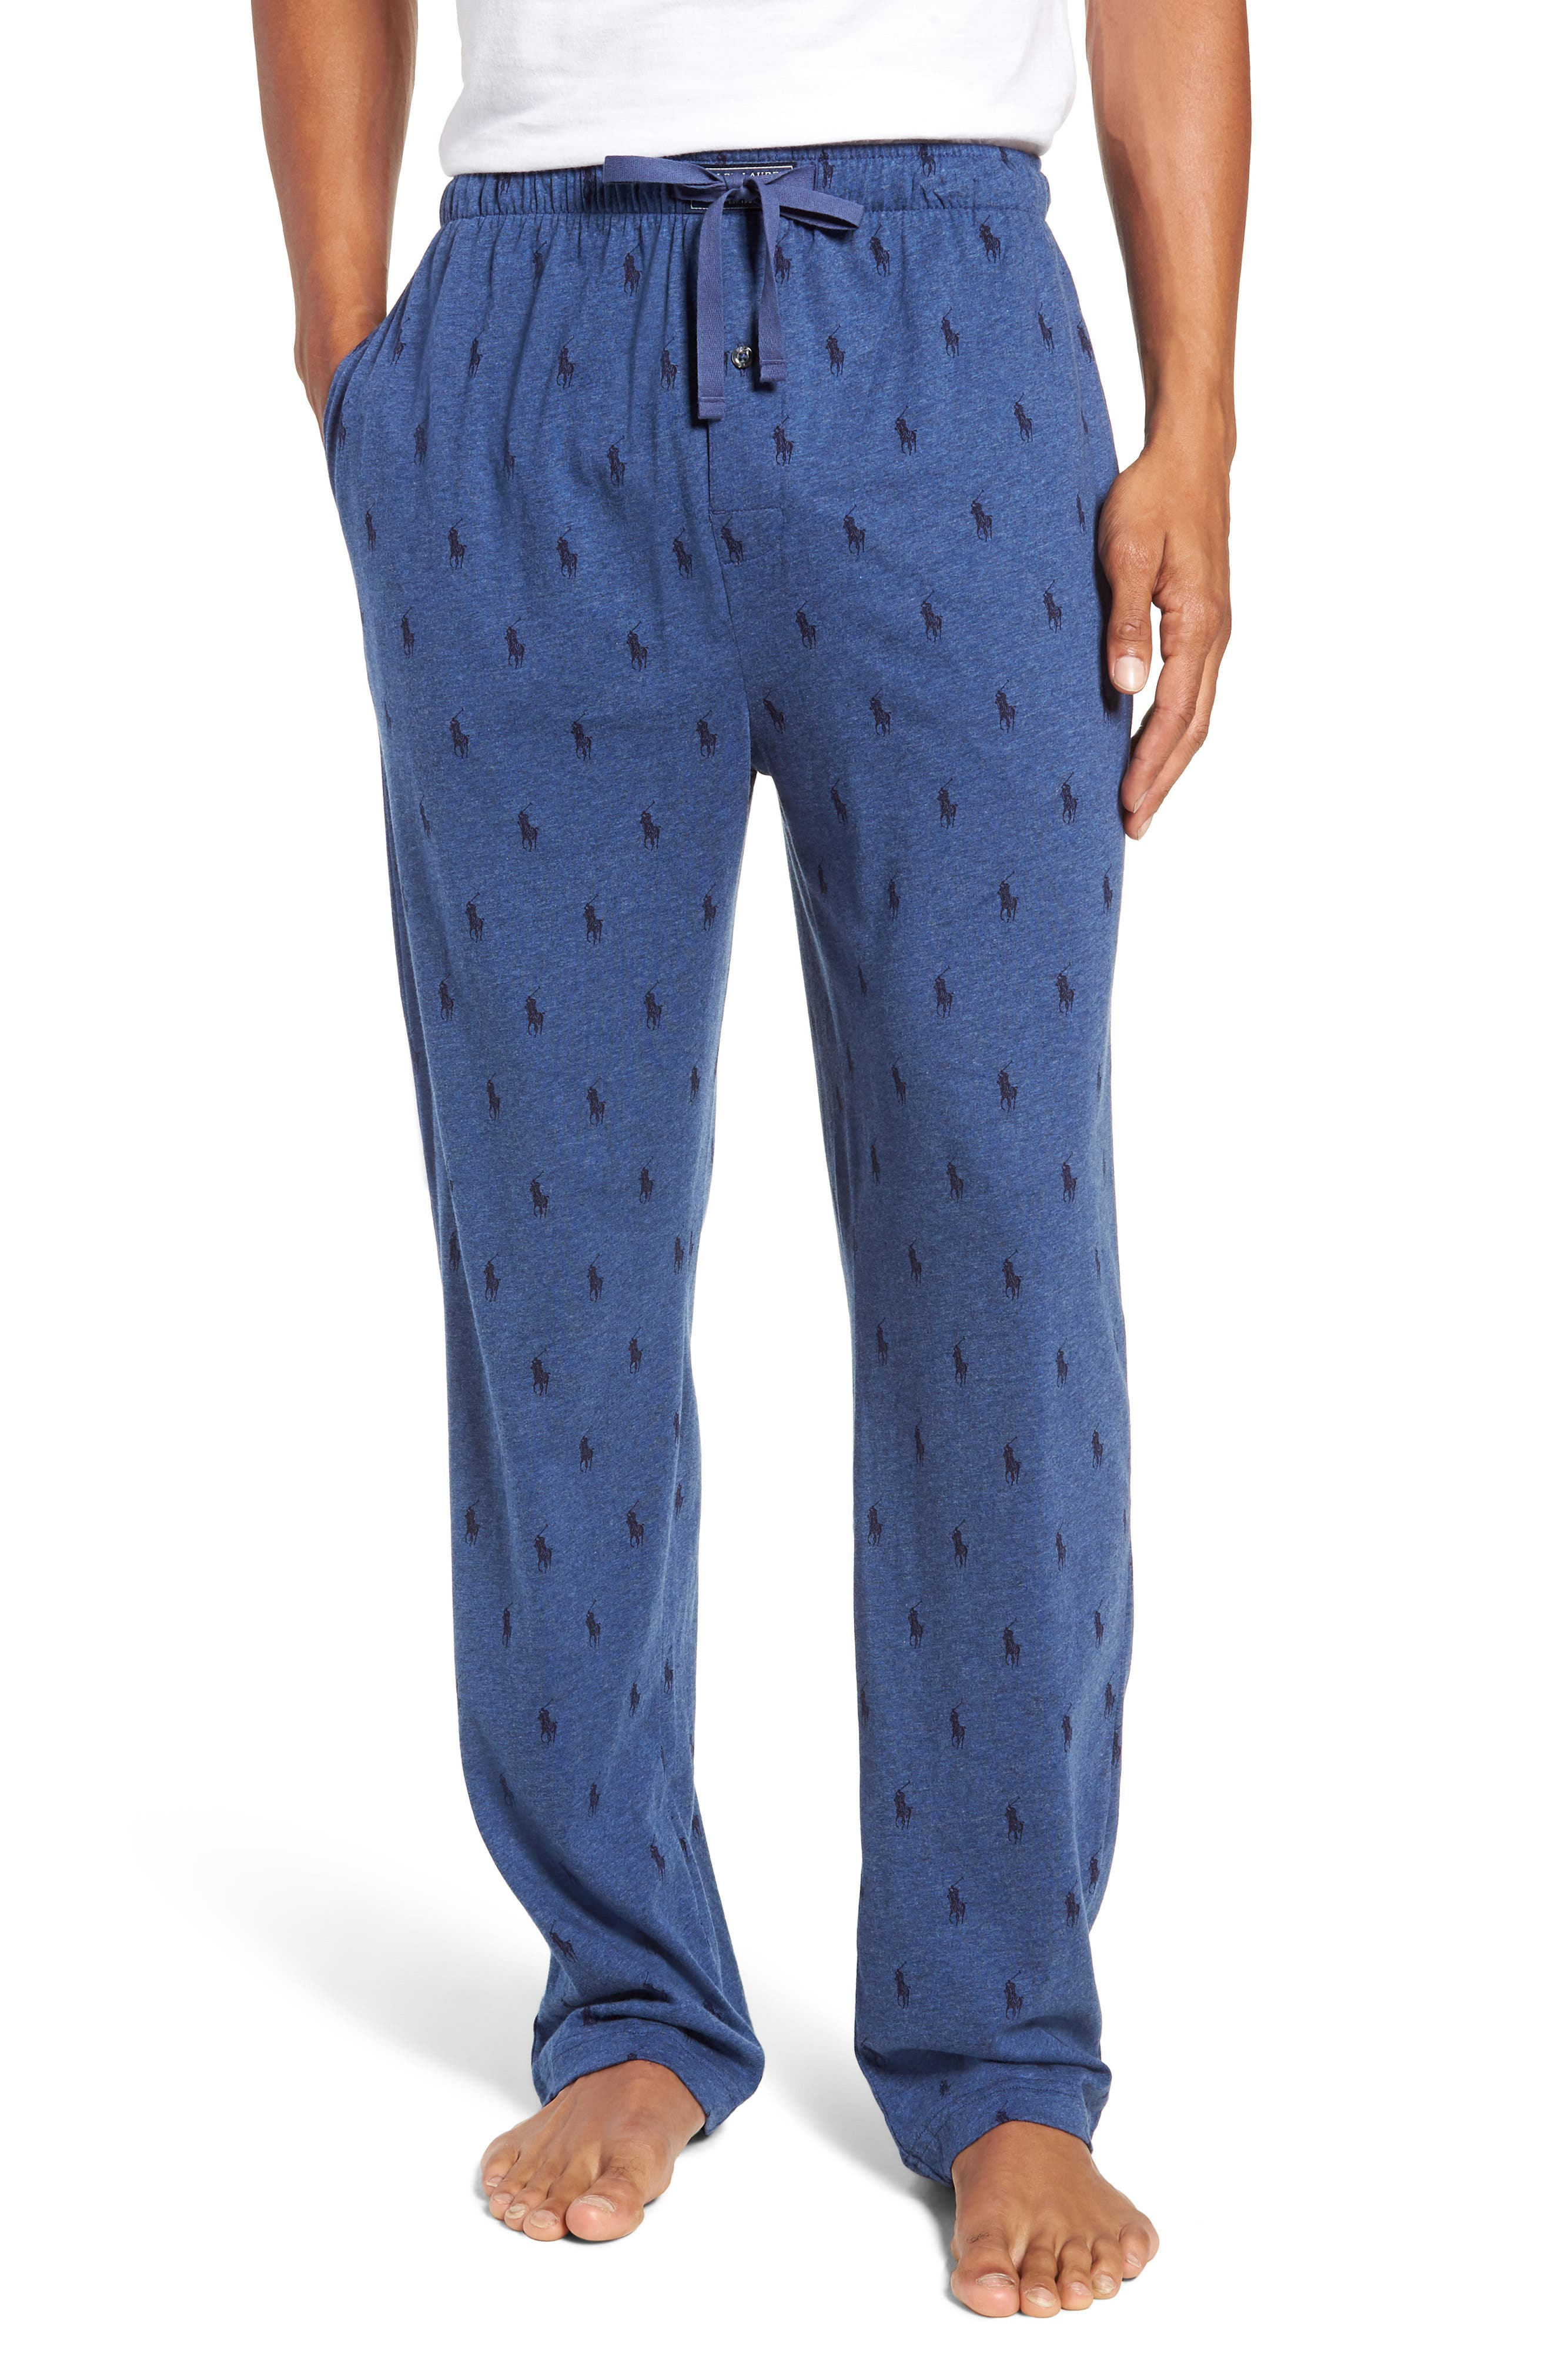 All Over Pony Lounge Pants,                             Main thumbnail 1, color,                             BLUE HEATHER/ CRUISE NAVY